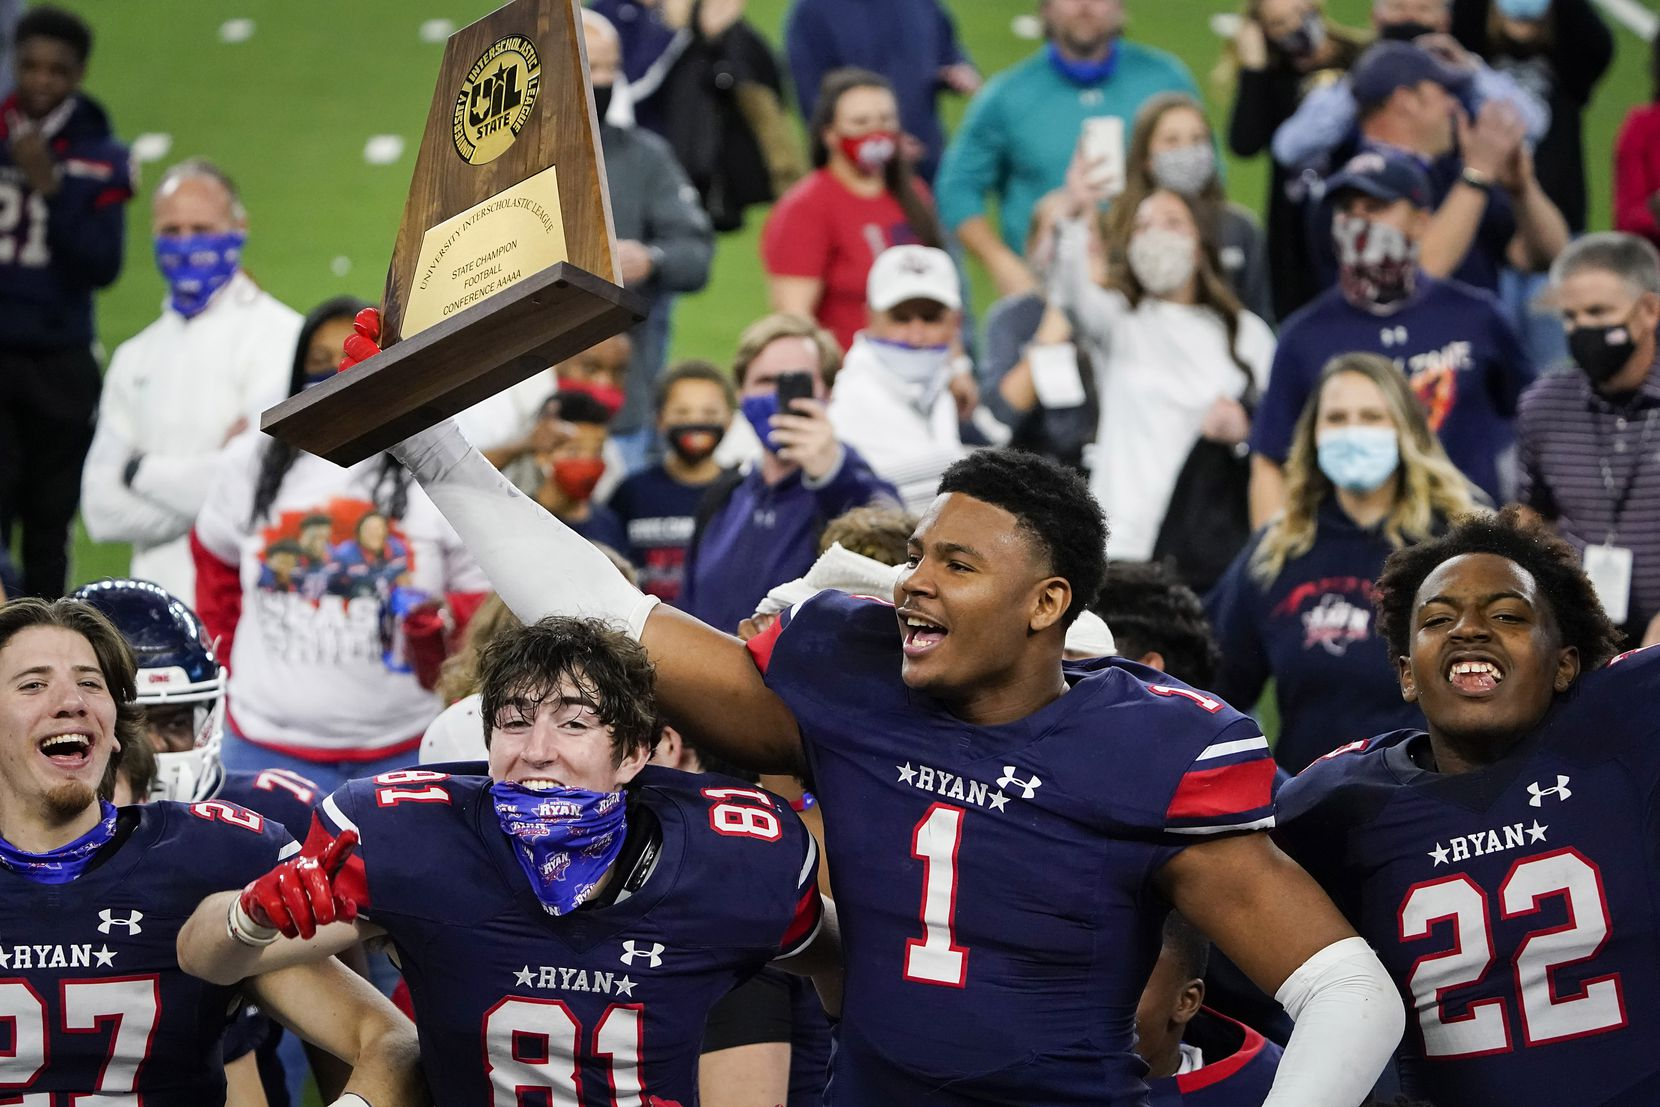 Denton Ryan wide receiver Ja'Tavion Sanders (1) lifts the championship trophy as the Raiders celebrate a 59-14 victory over Cedar Park to win the Class 5A Division I state football championship game at AT&T Stadium on Friday, Jan. 15, 2021, in Arlington, Texas.